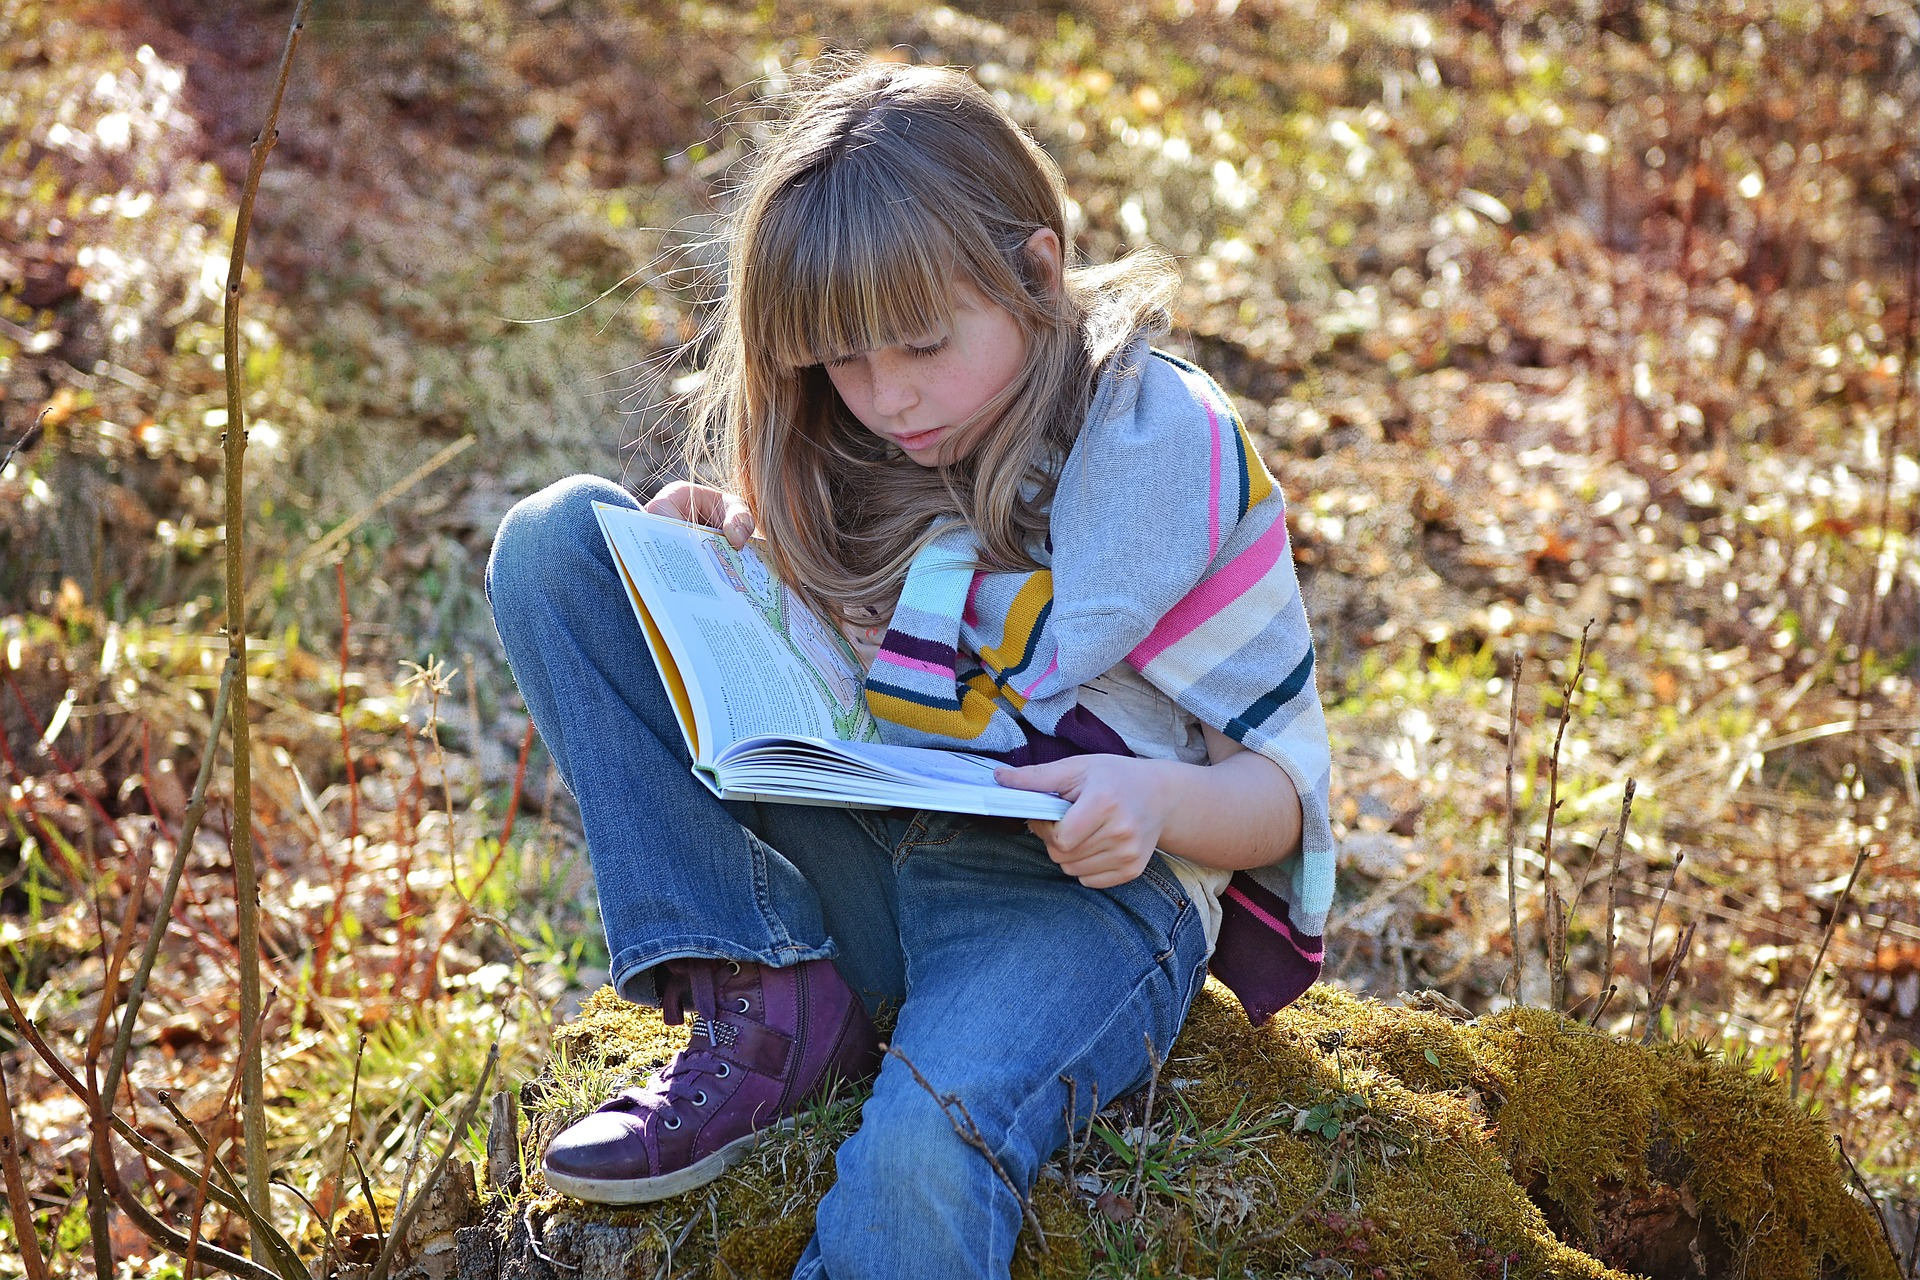 Introducing a book series to a child is a great way to encourage recreational reading.